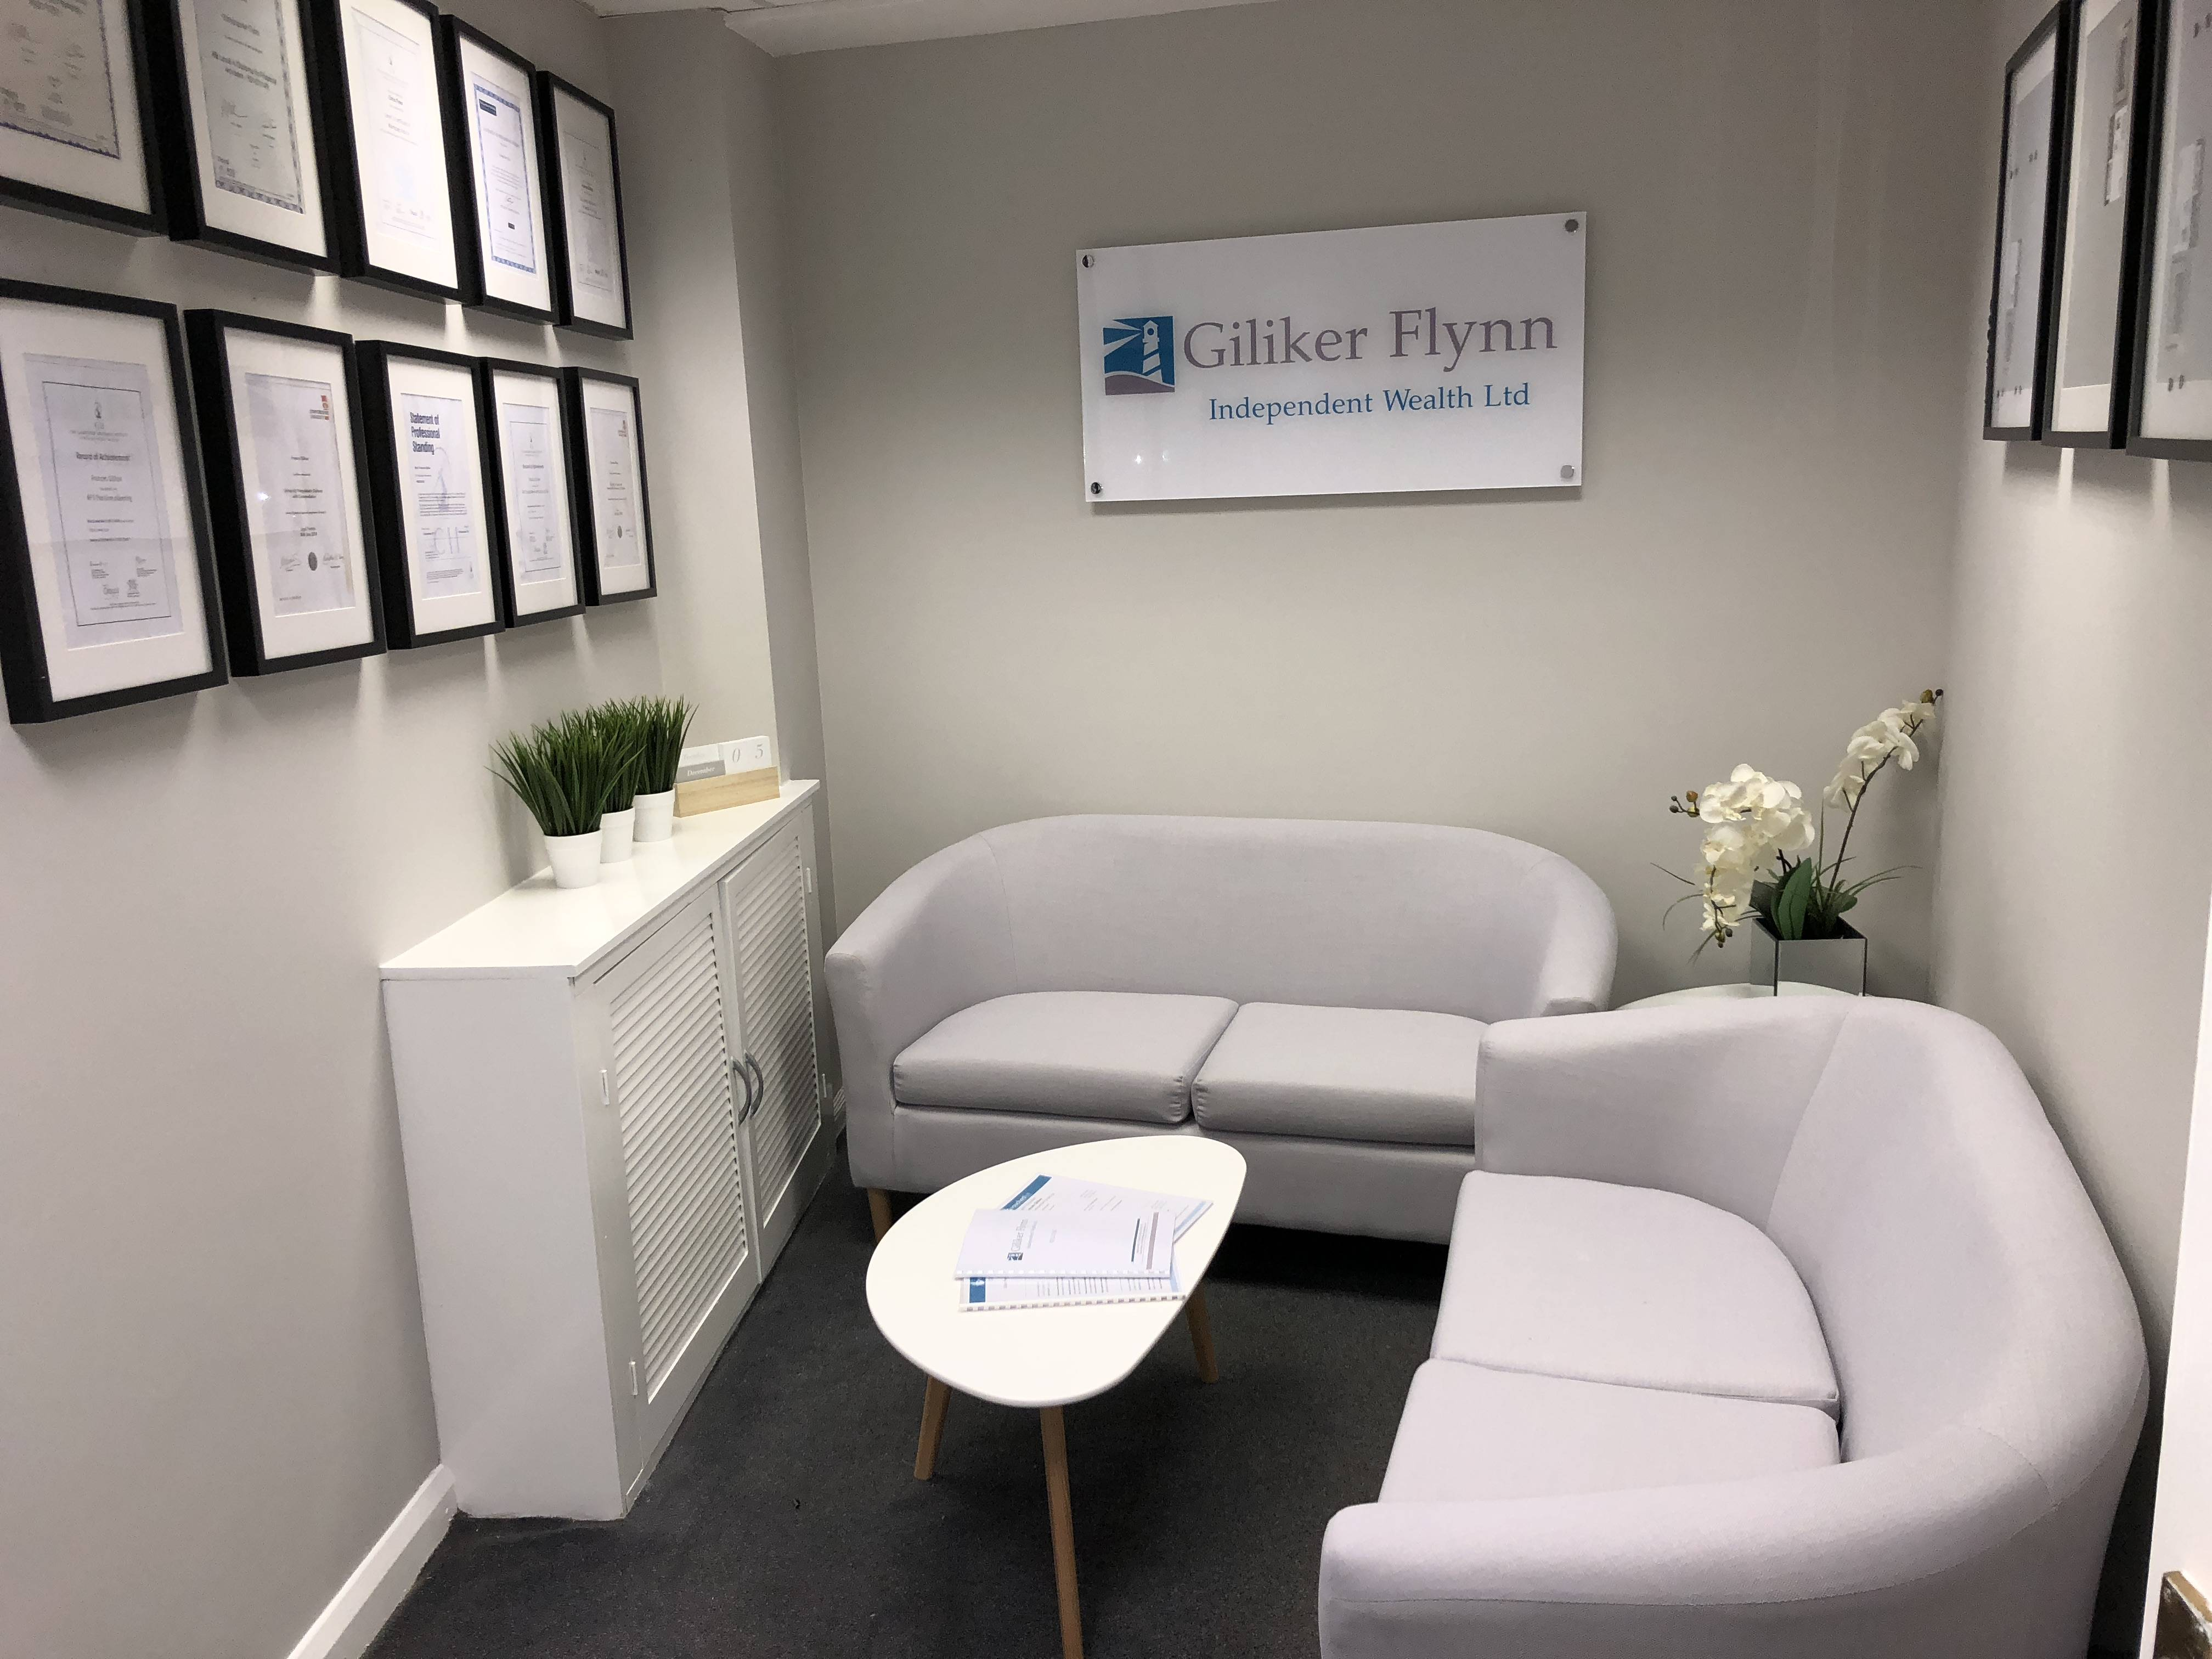 Financial advisers in Stoke On Trent